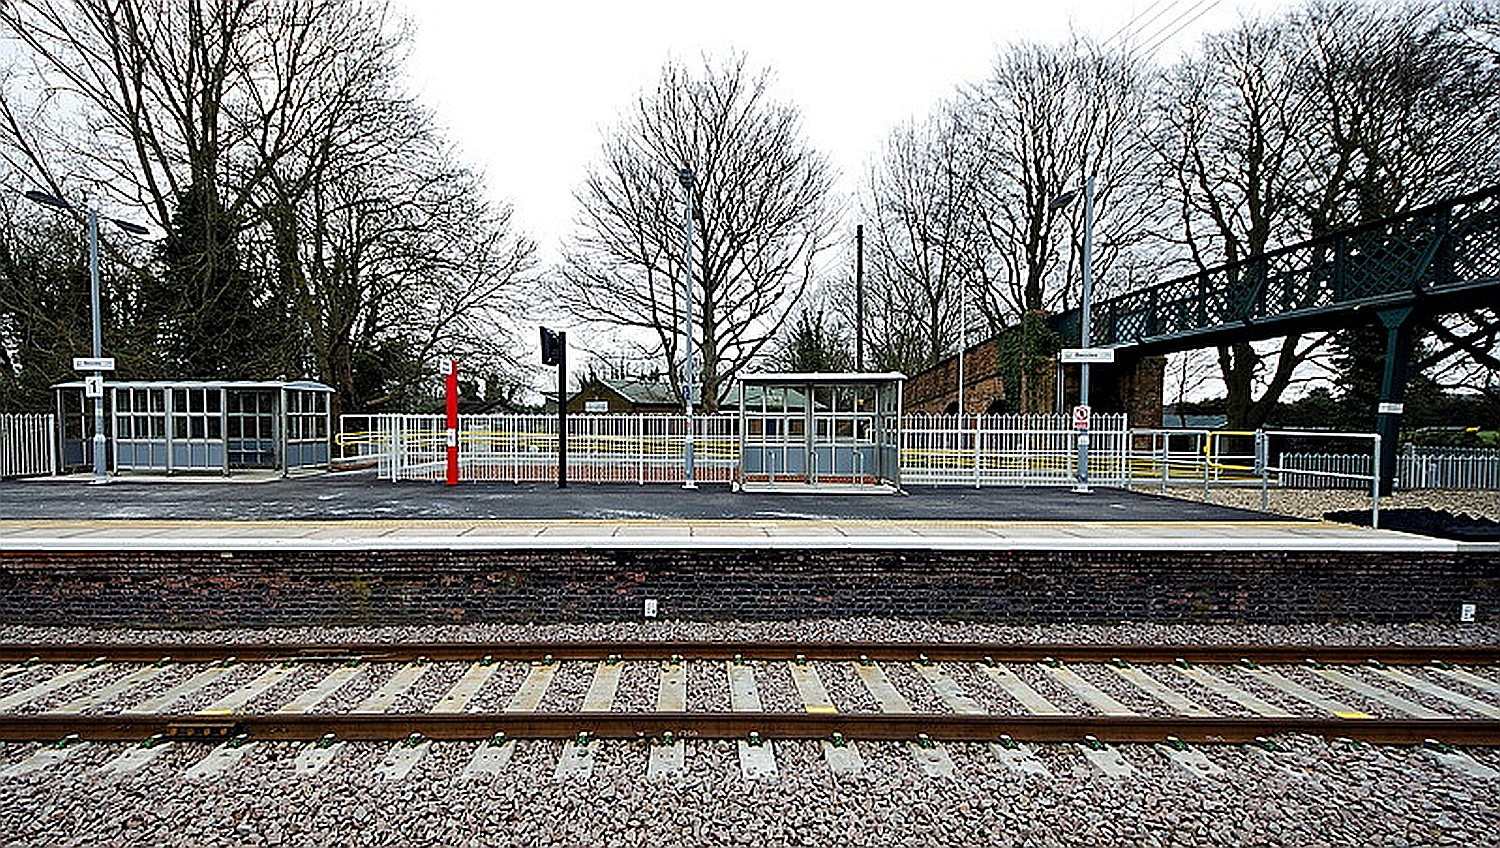 beccles-railway-station-31554108-6_1500ojs.jpg